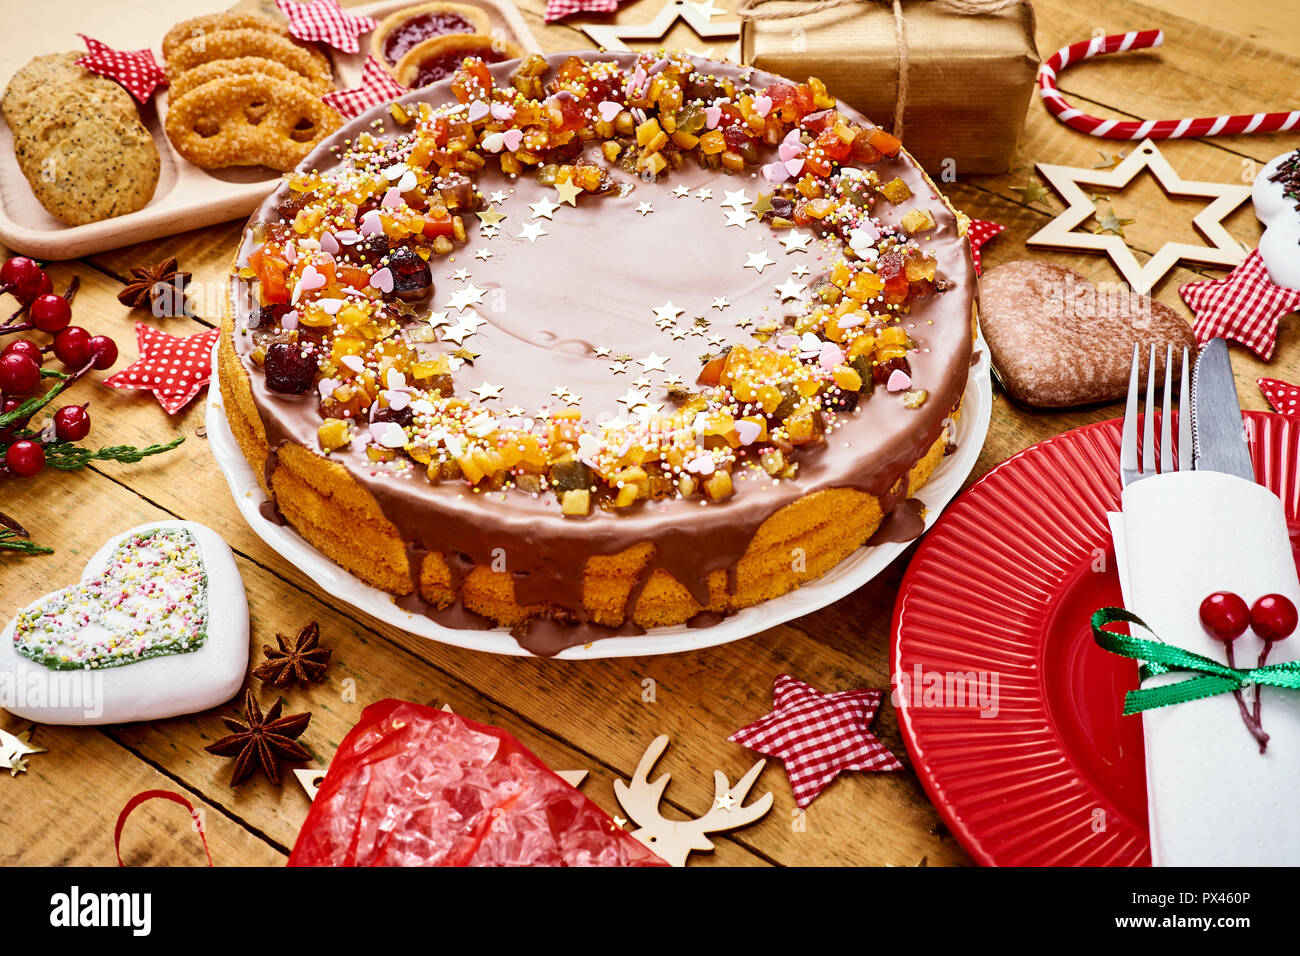 Old Wooden Table With Delicious Christmas Cake Decorations And